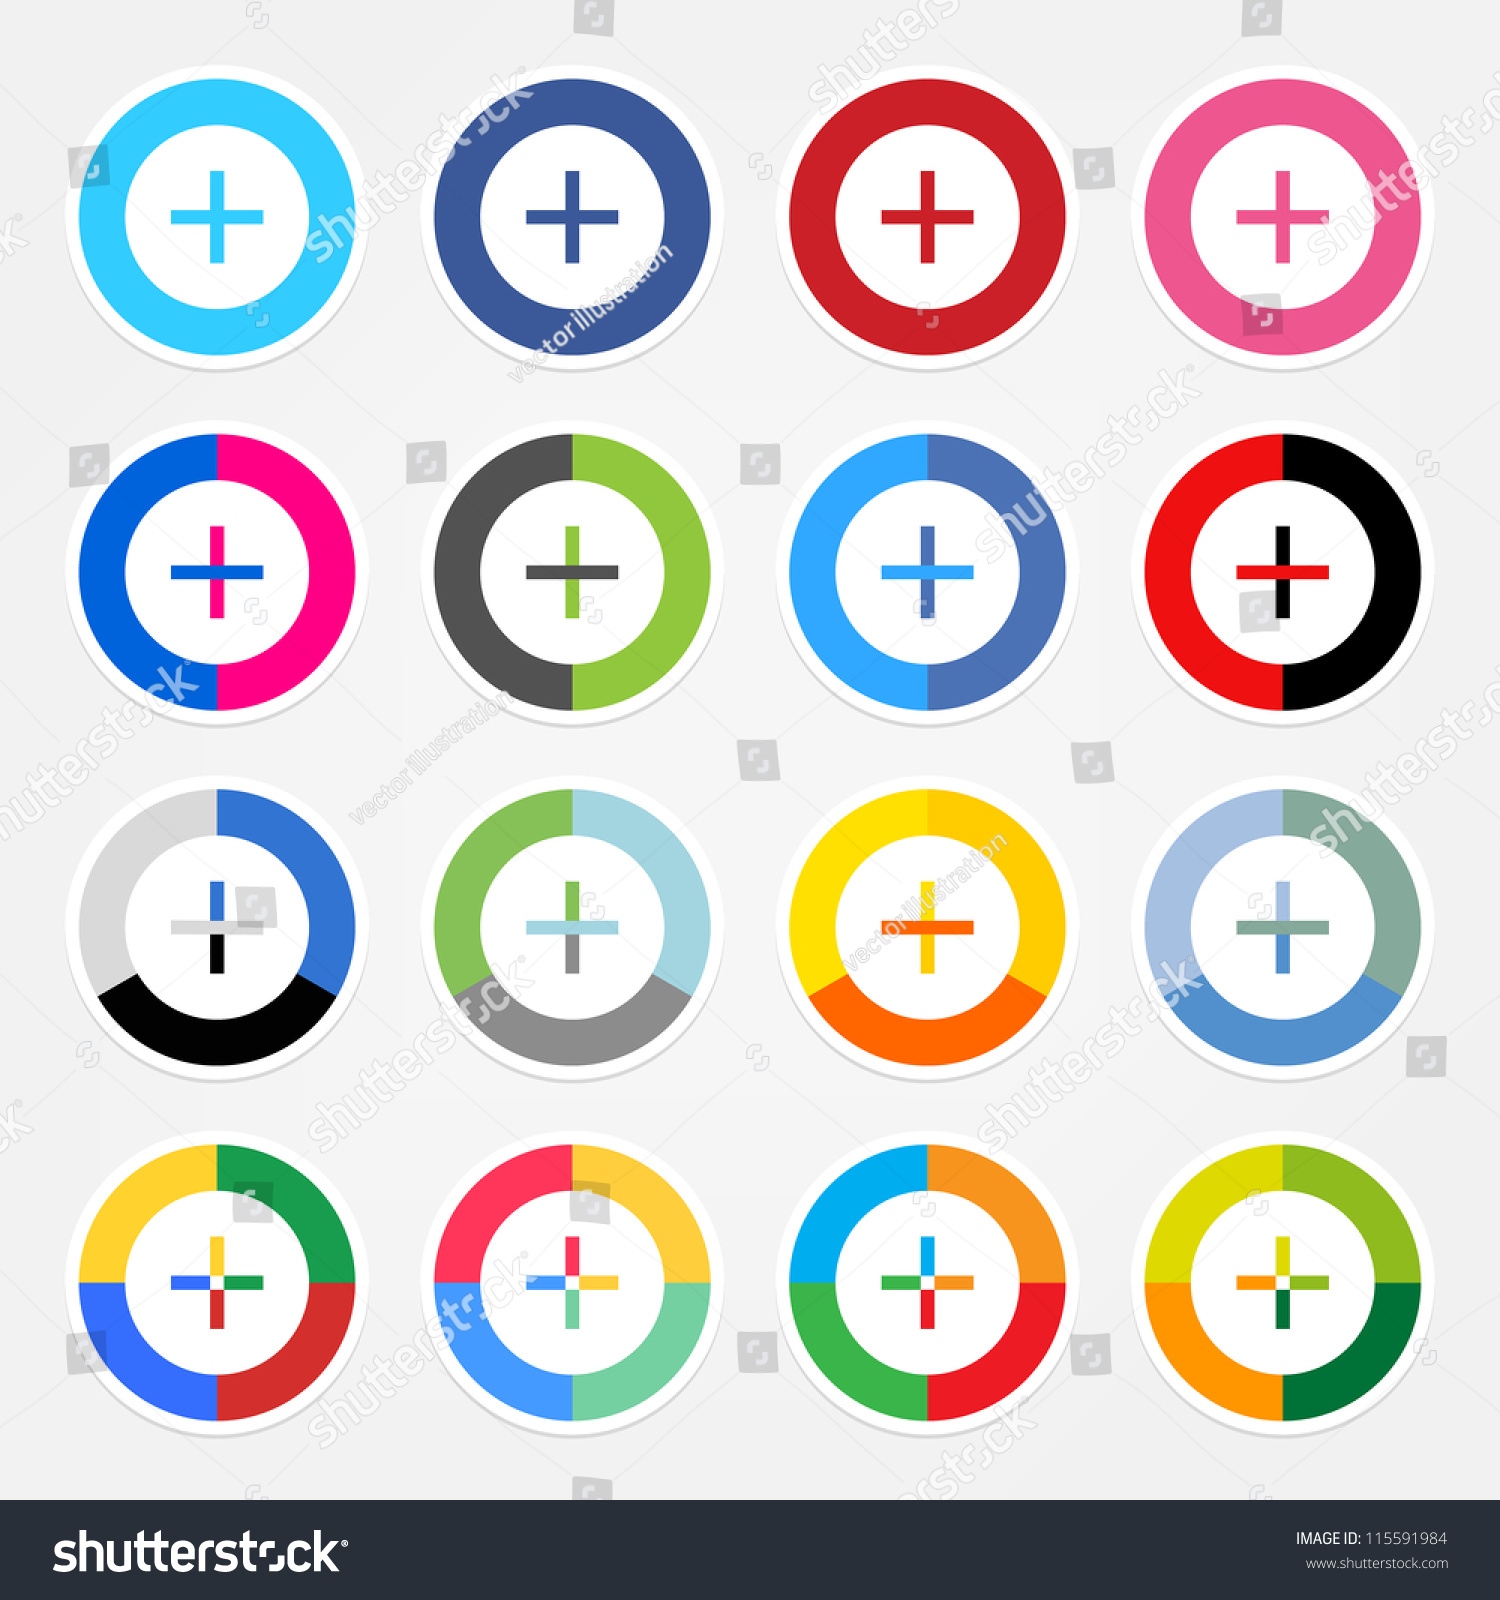 Simple Popular Social Networks Icon With Plus Sign